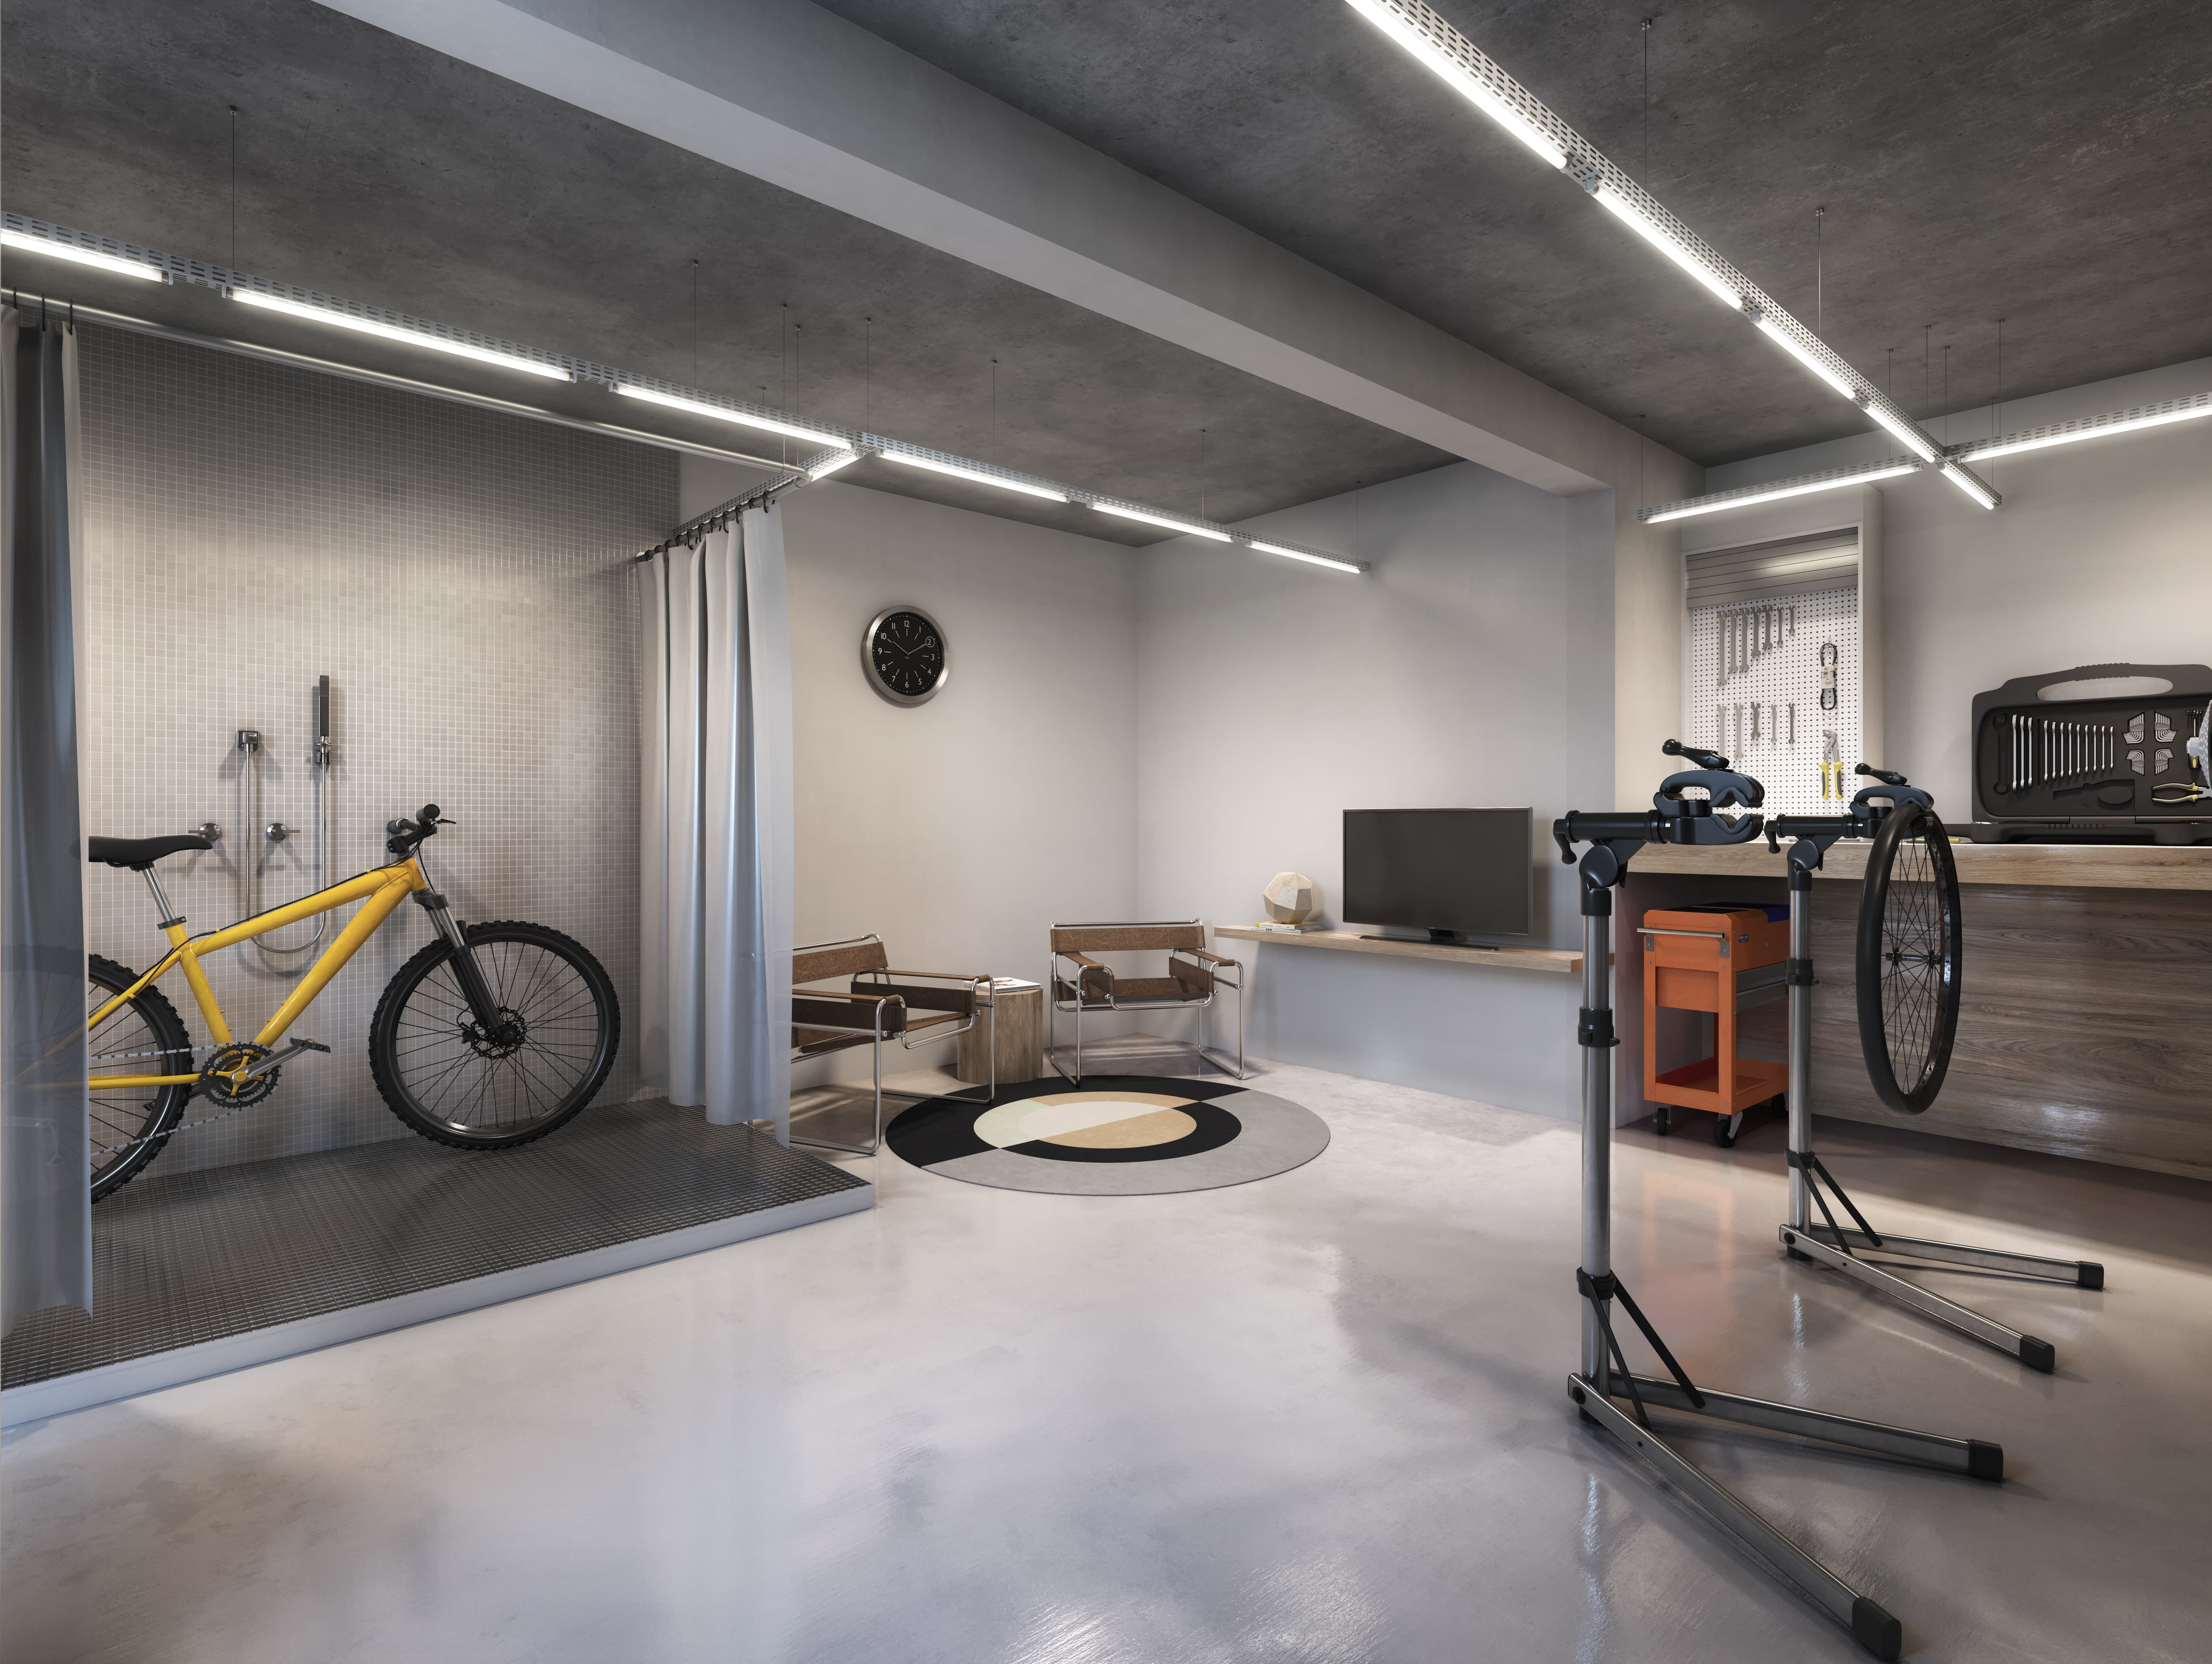 NY, 205 - Bike room